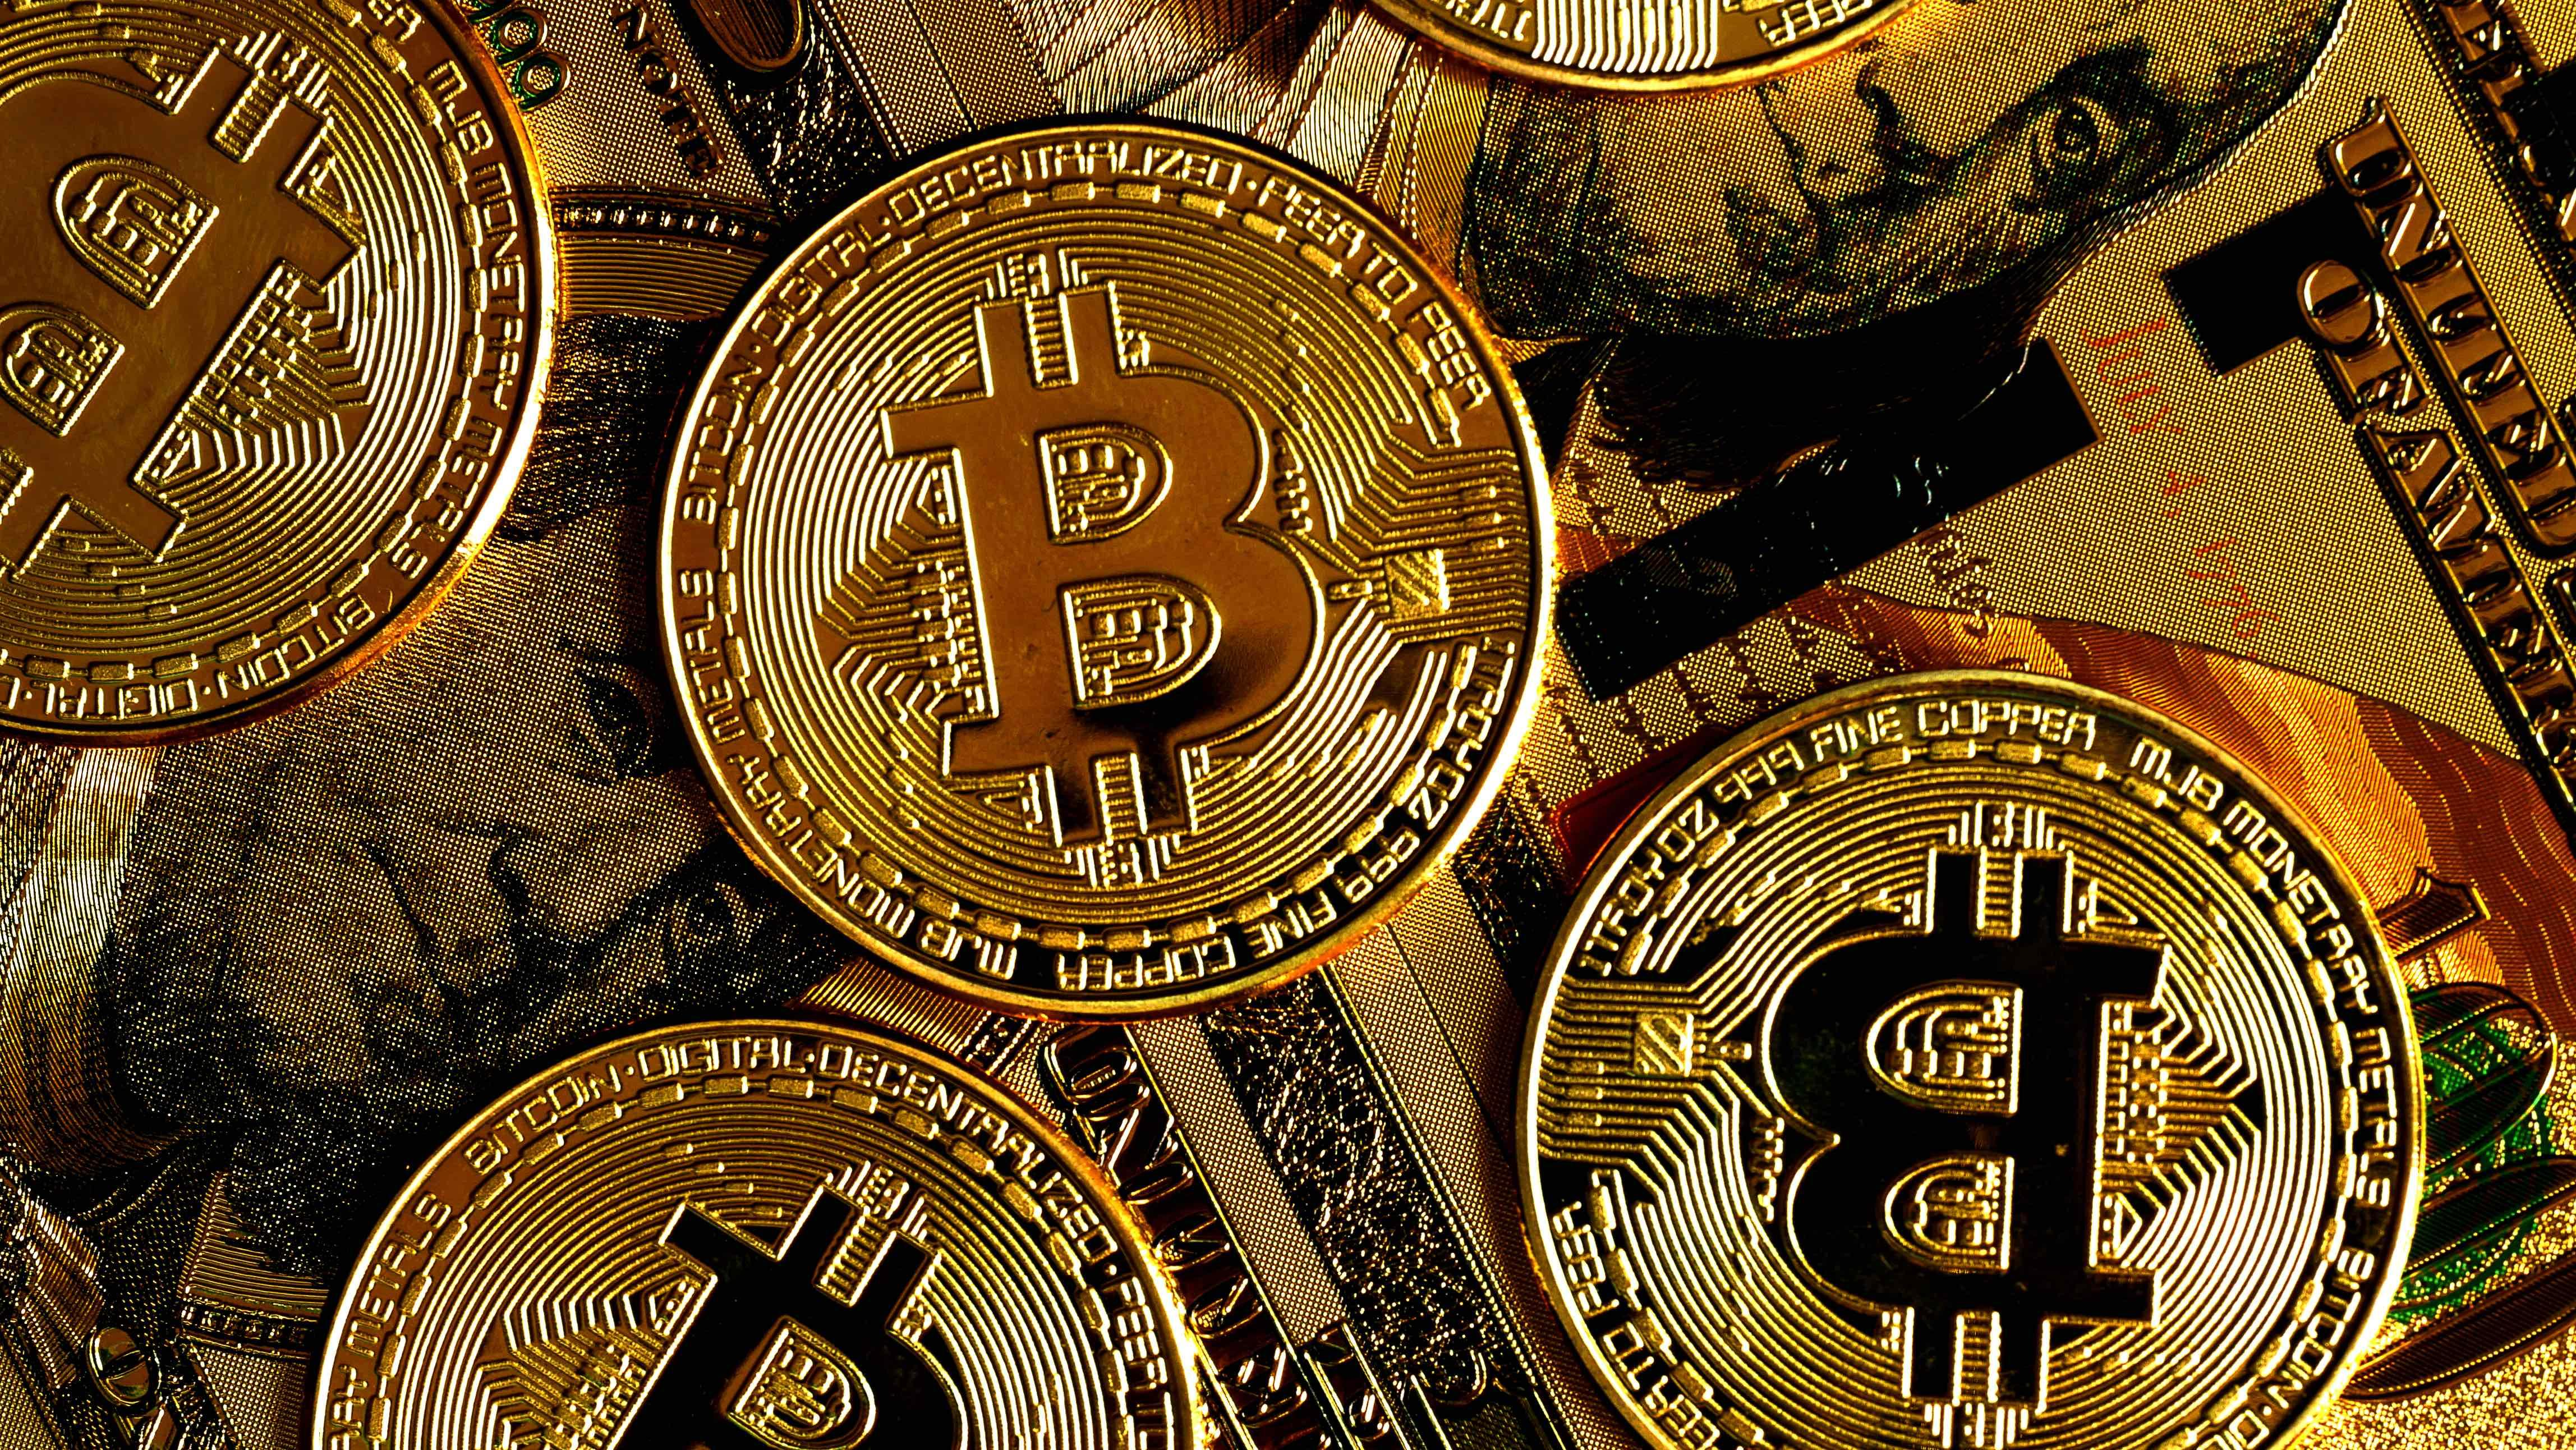 Bitcoin Won't Be a Global Reserve Currency. But It's Opening the Box